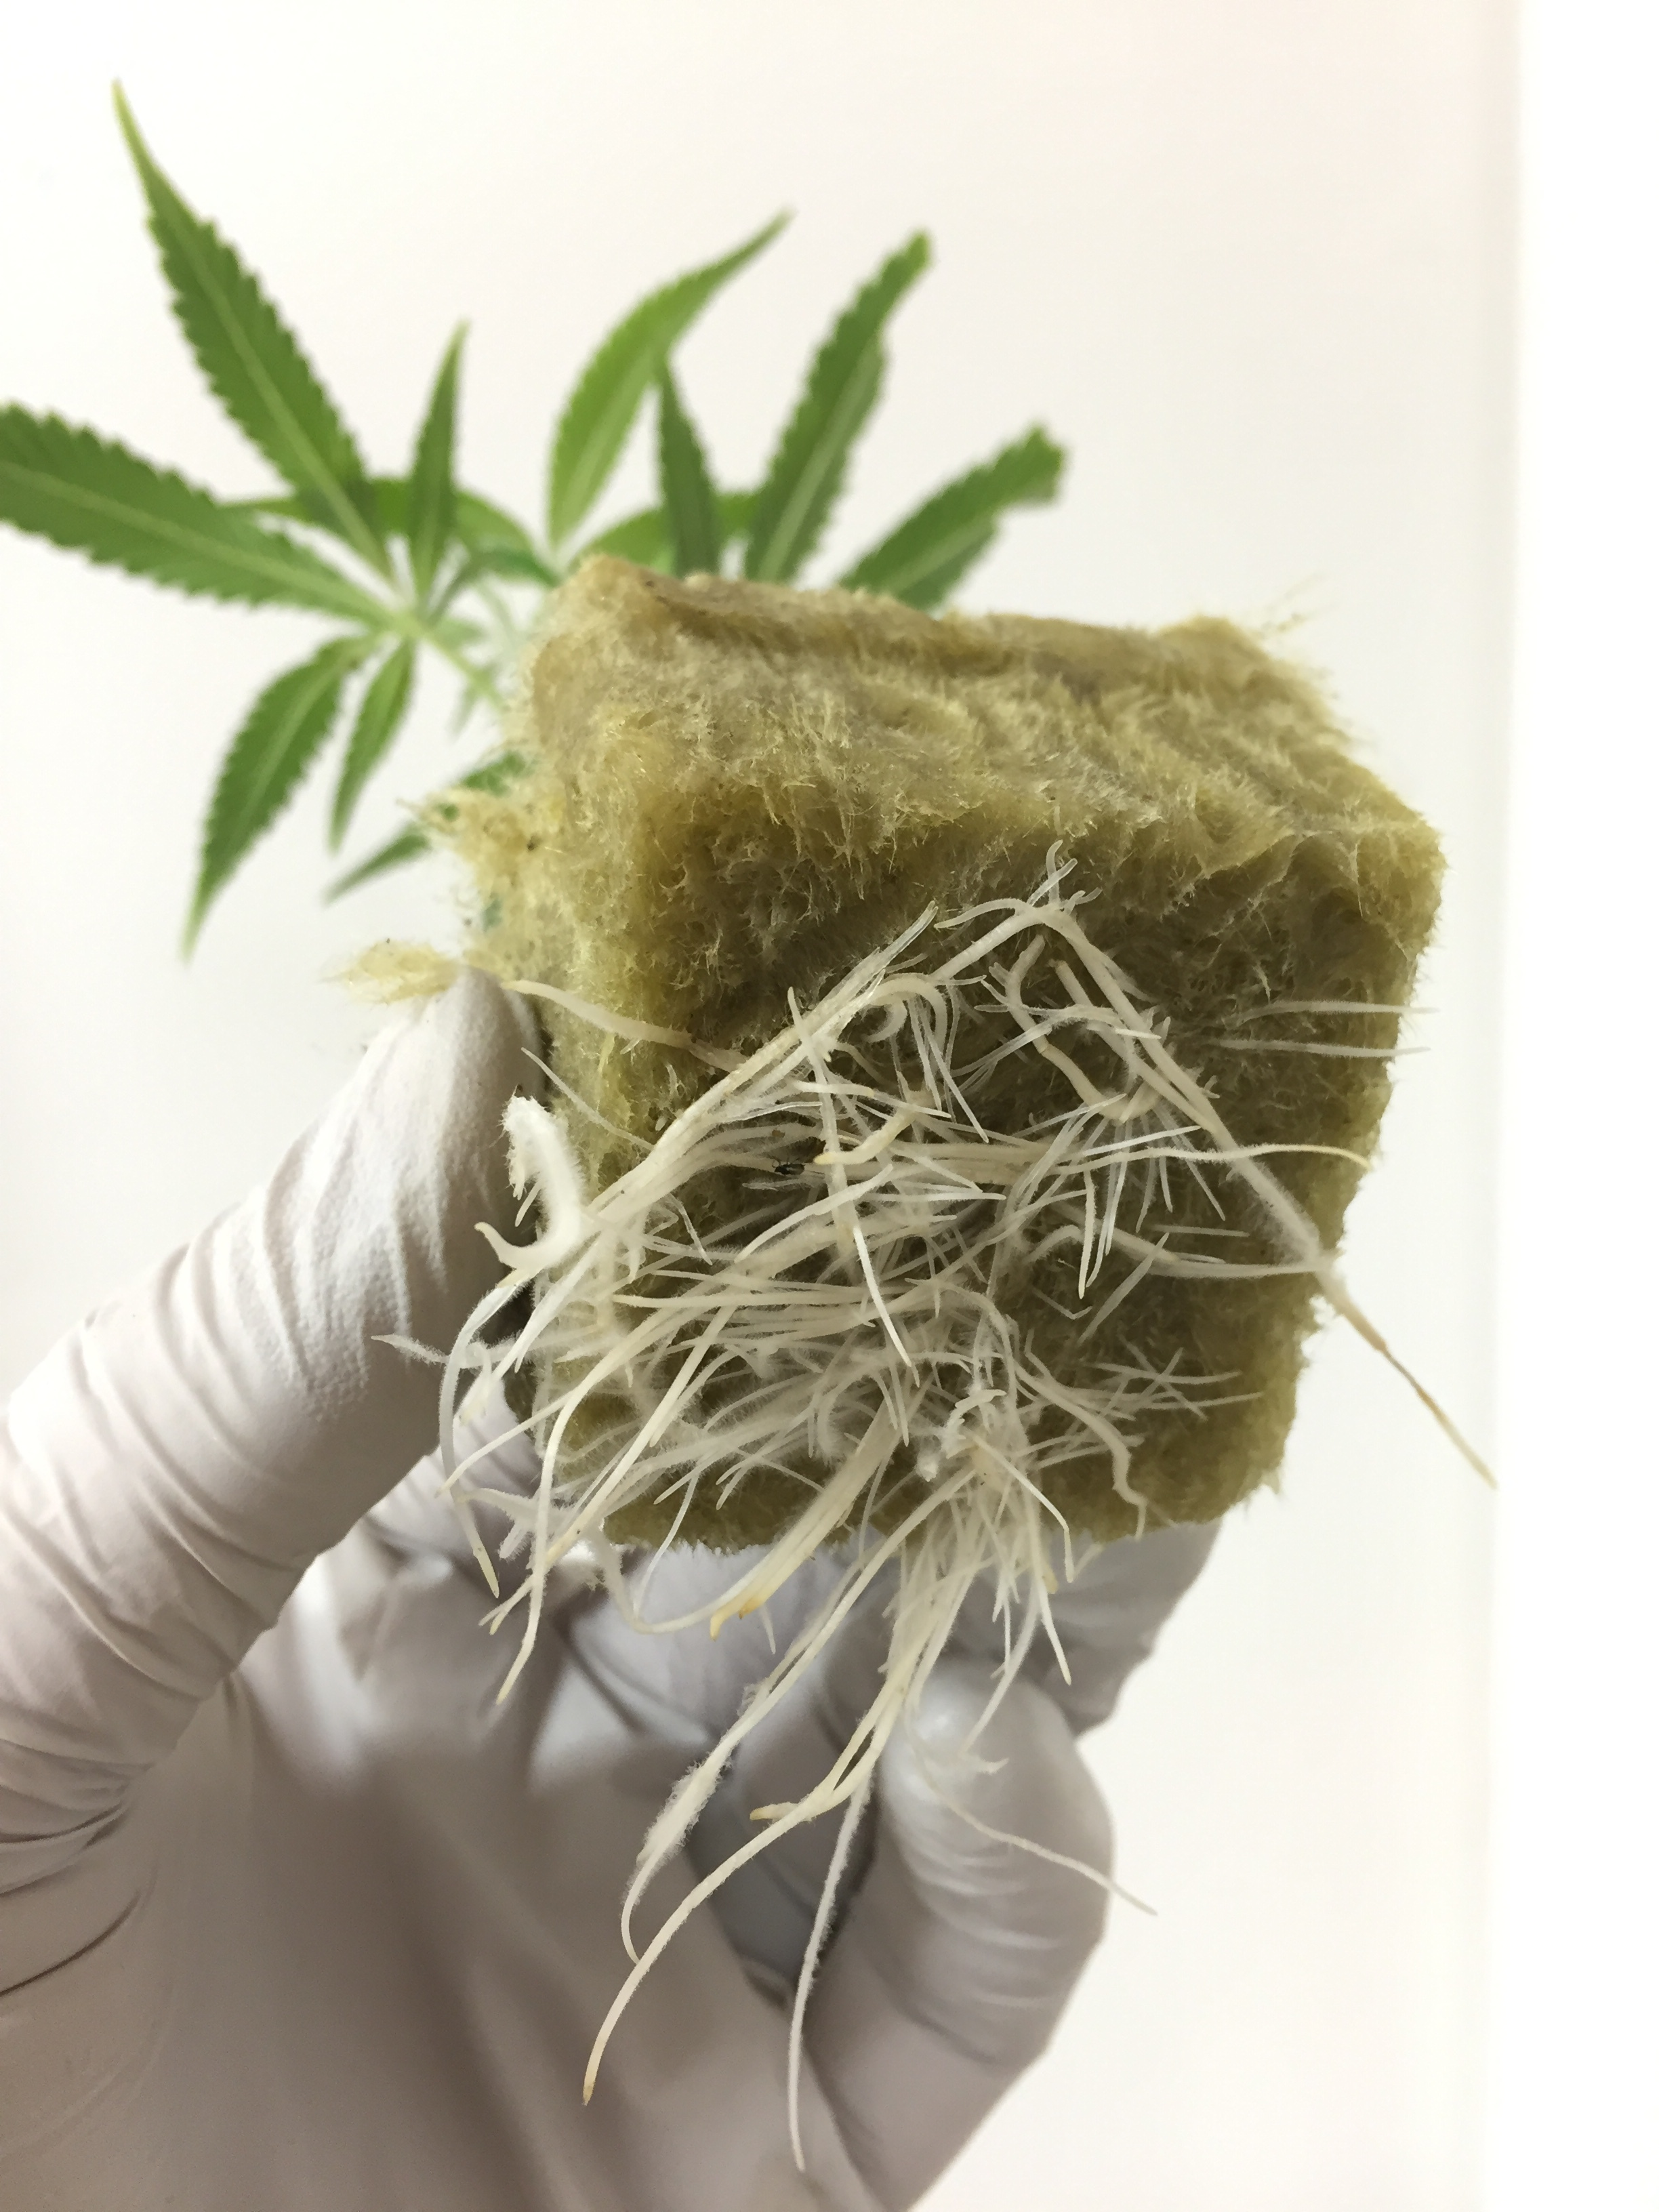 Clone with blown out roots using Boomspharm Cultivation Methods